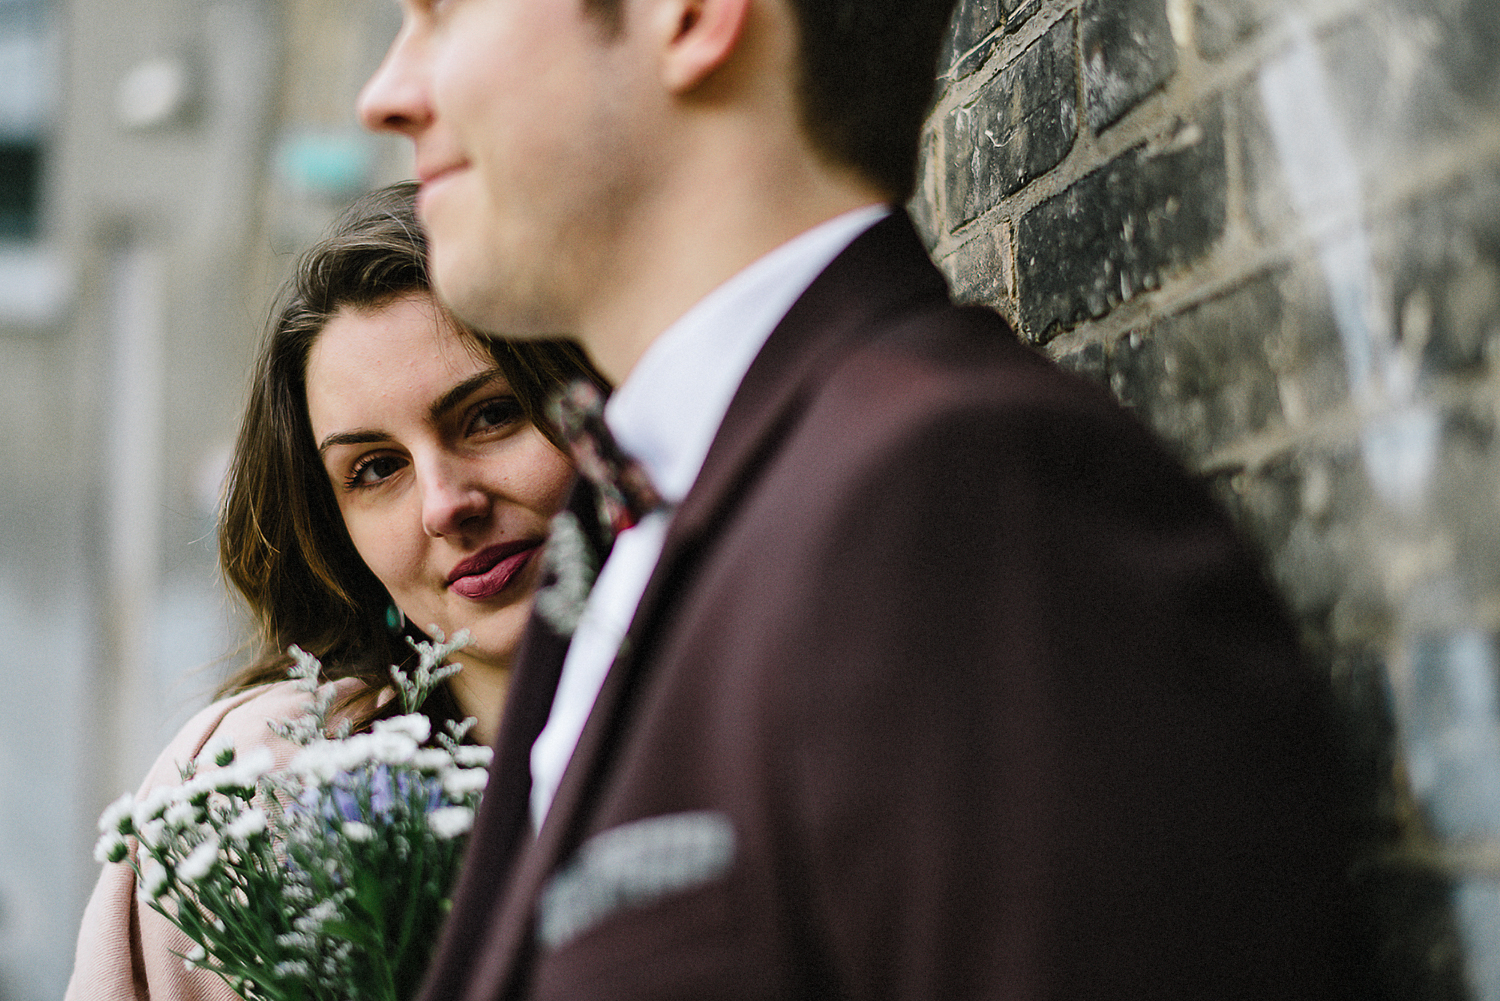 9-Toronto-City-Hall-Fall-Elopement-Indie-Altervatice-Urban-City-Bride-and-Groom_Fall-Colours-Riverdale-Downtown-Toronto-Best-Wedding-Photographers-Graffiti-Bride-Eyes.JPG